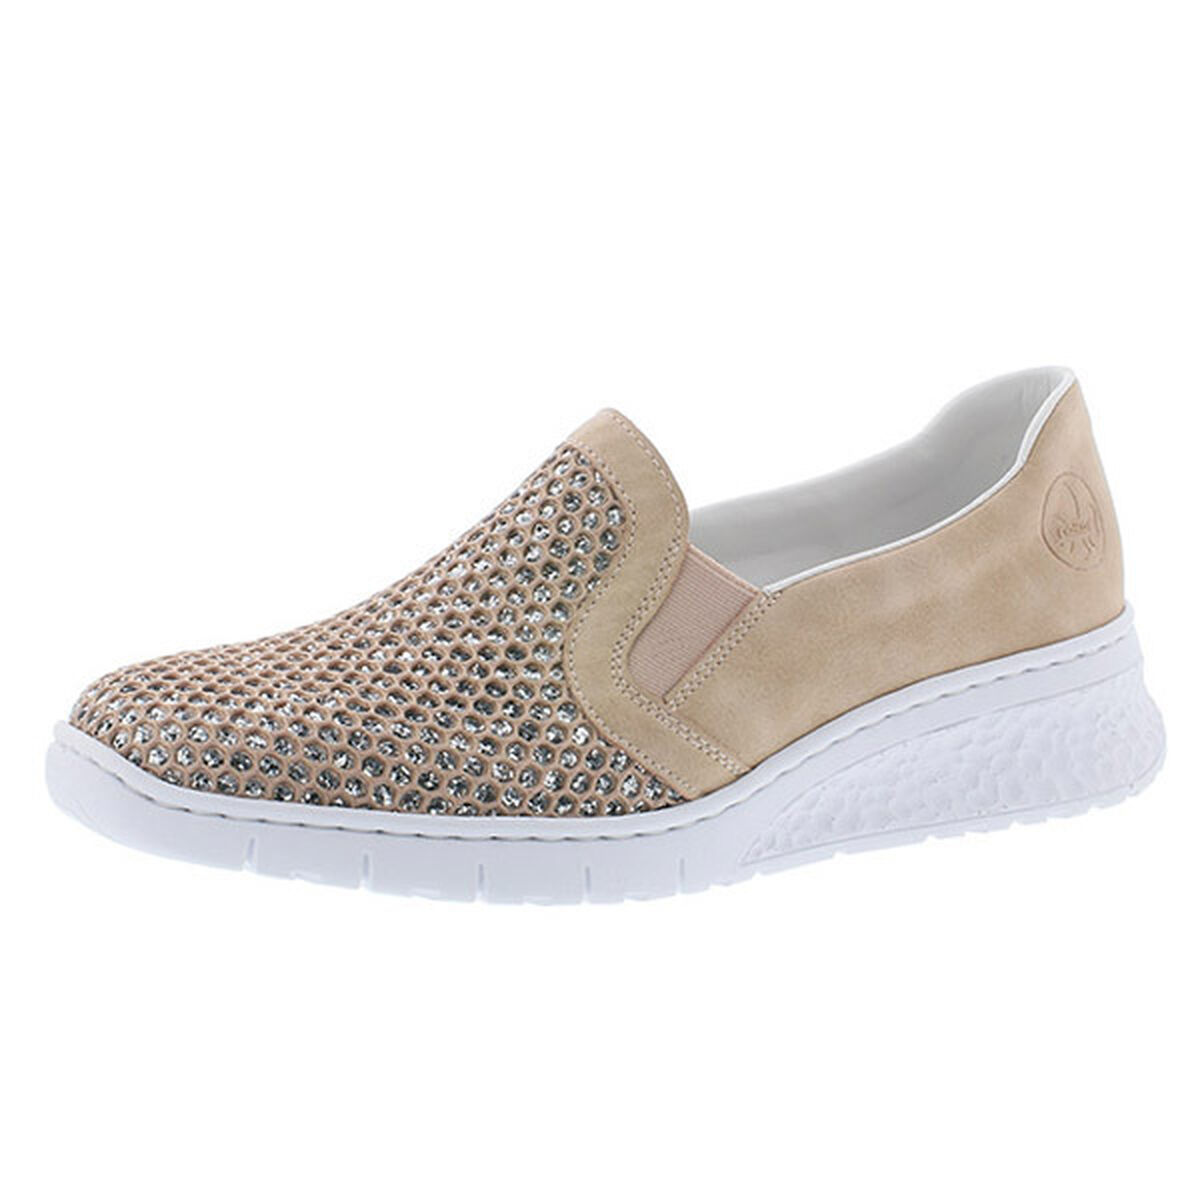 new arrival ec140 66593 Damen Slipper, rosa, 36